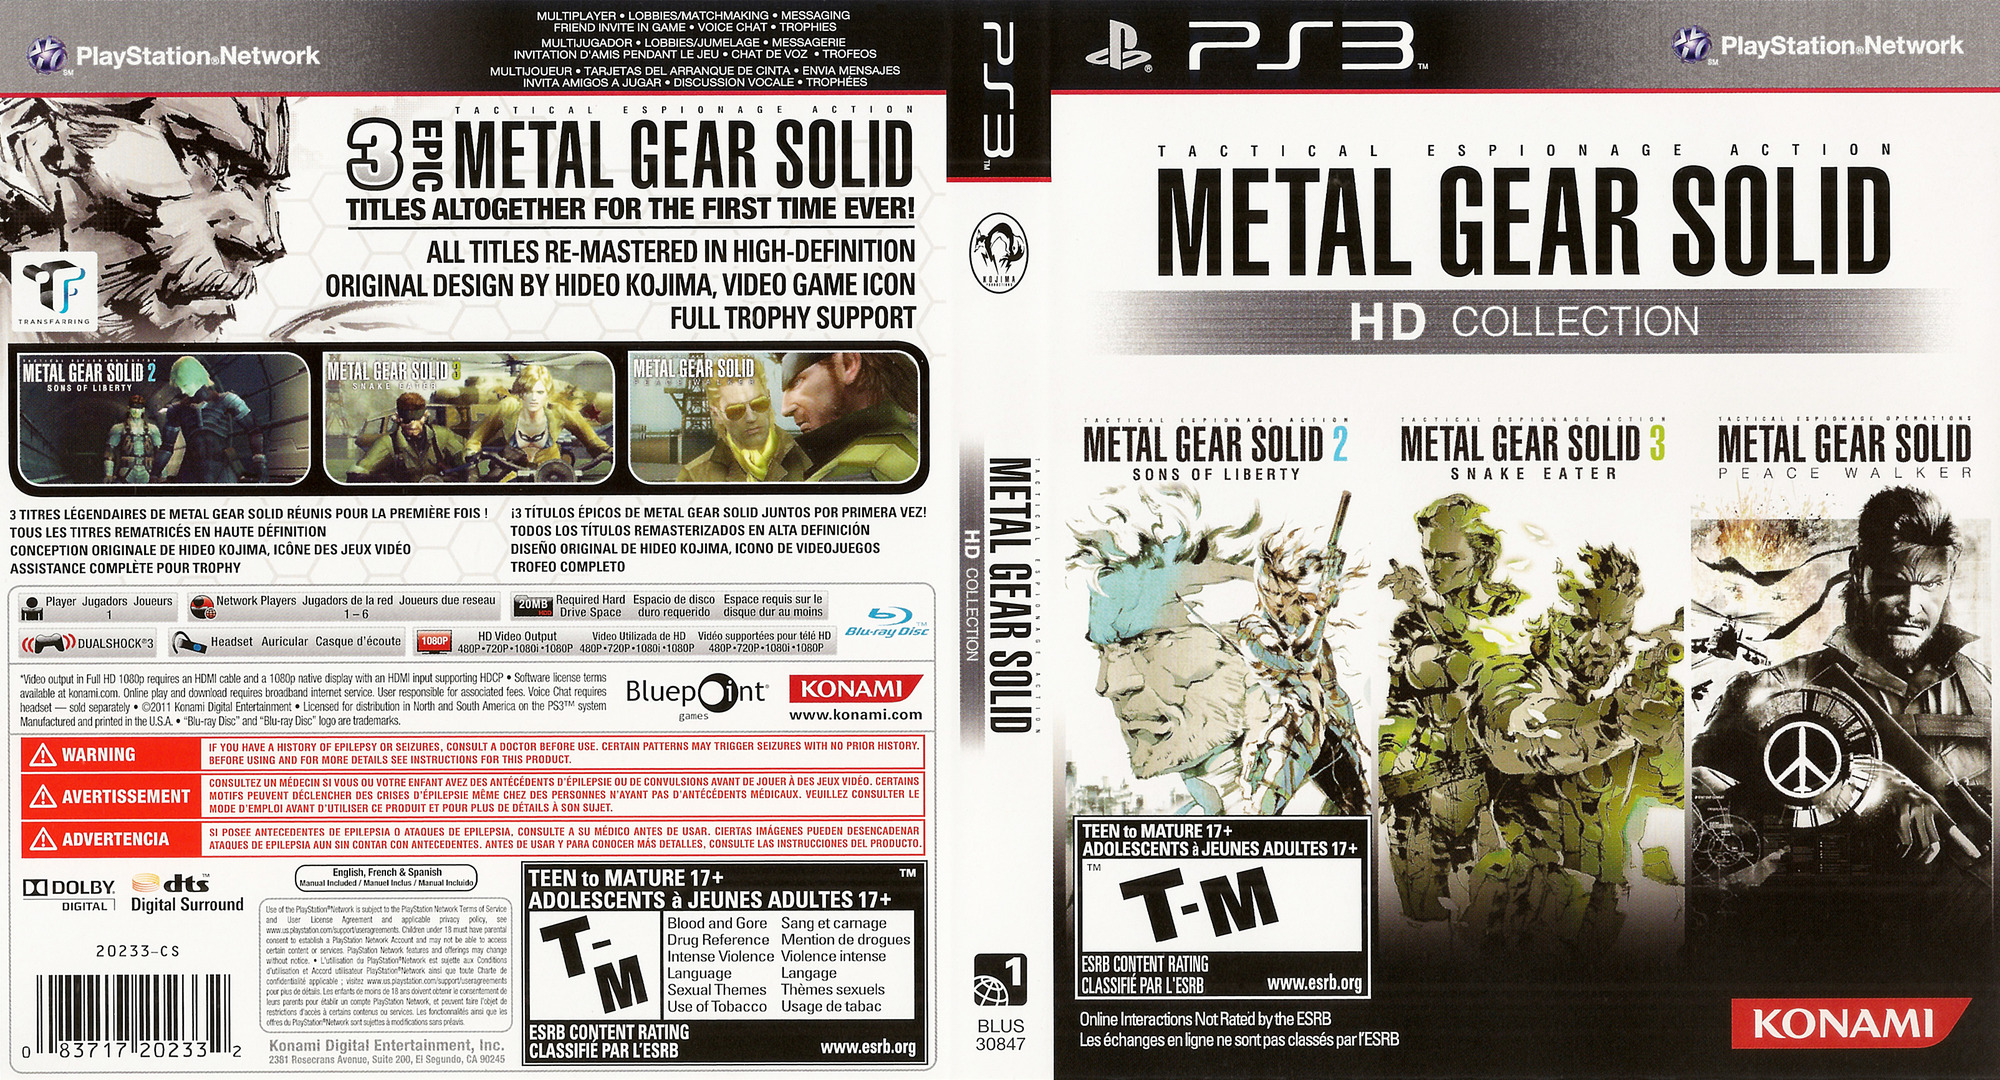 Metal Gear Solid: HD Collection PS3 coverfullHQ (BLUS30847)